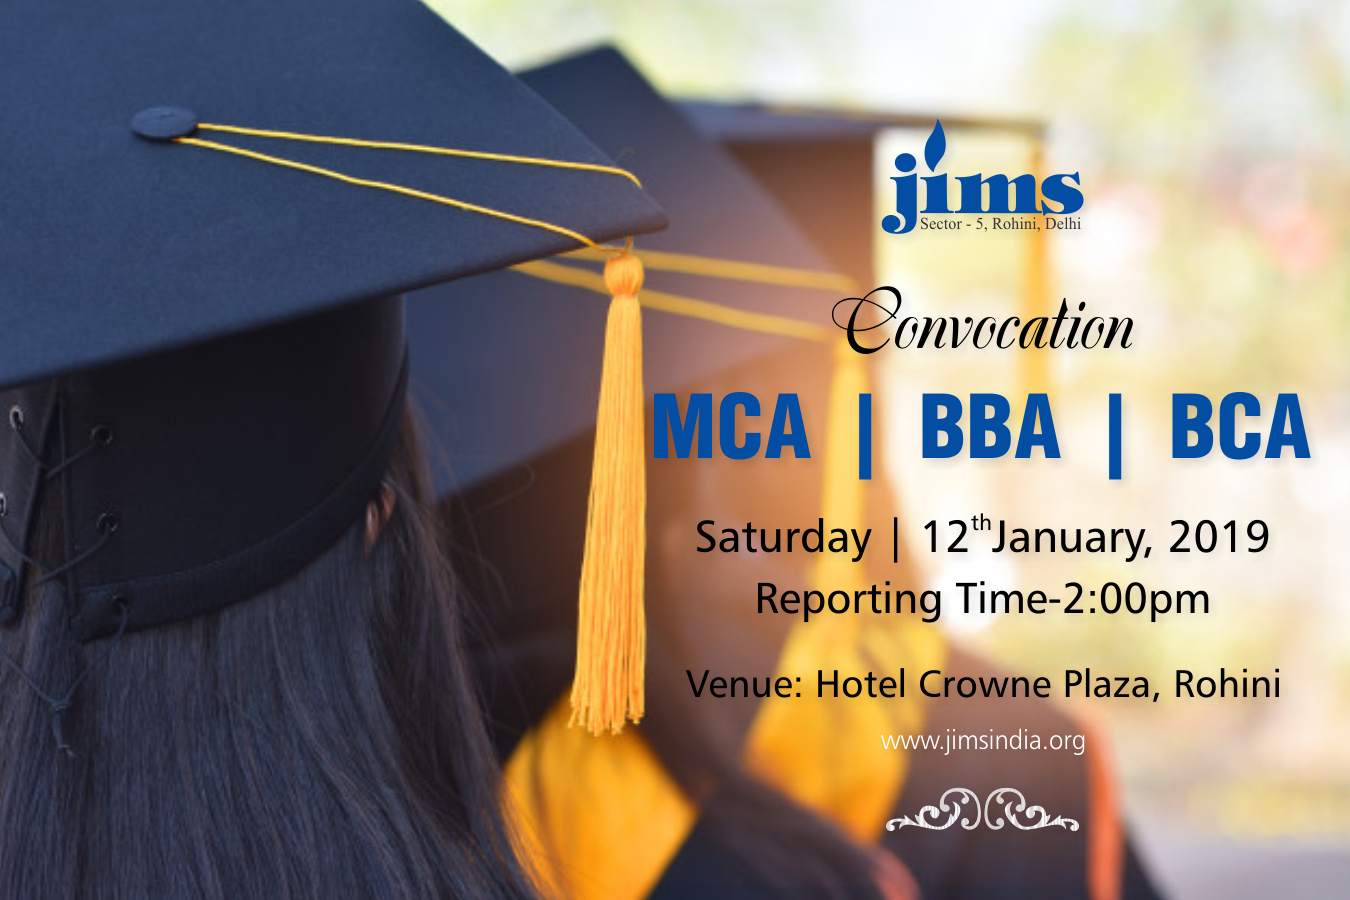 Convocation for MCA, BBA & BCA Batch 2015-2018 on Saturday, 12th January, 2019 2:00 PM Onwards